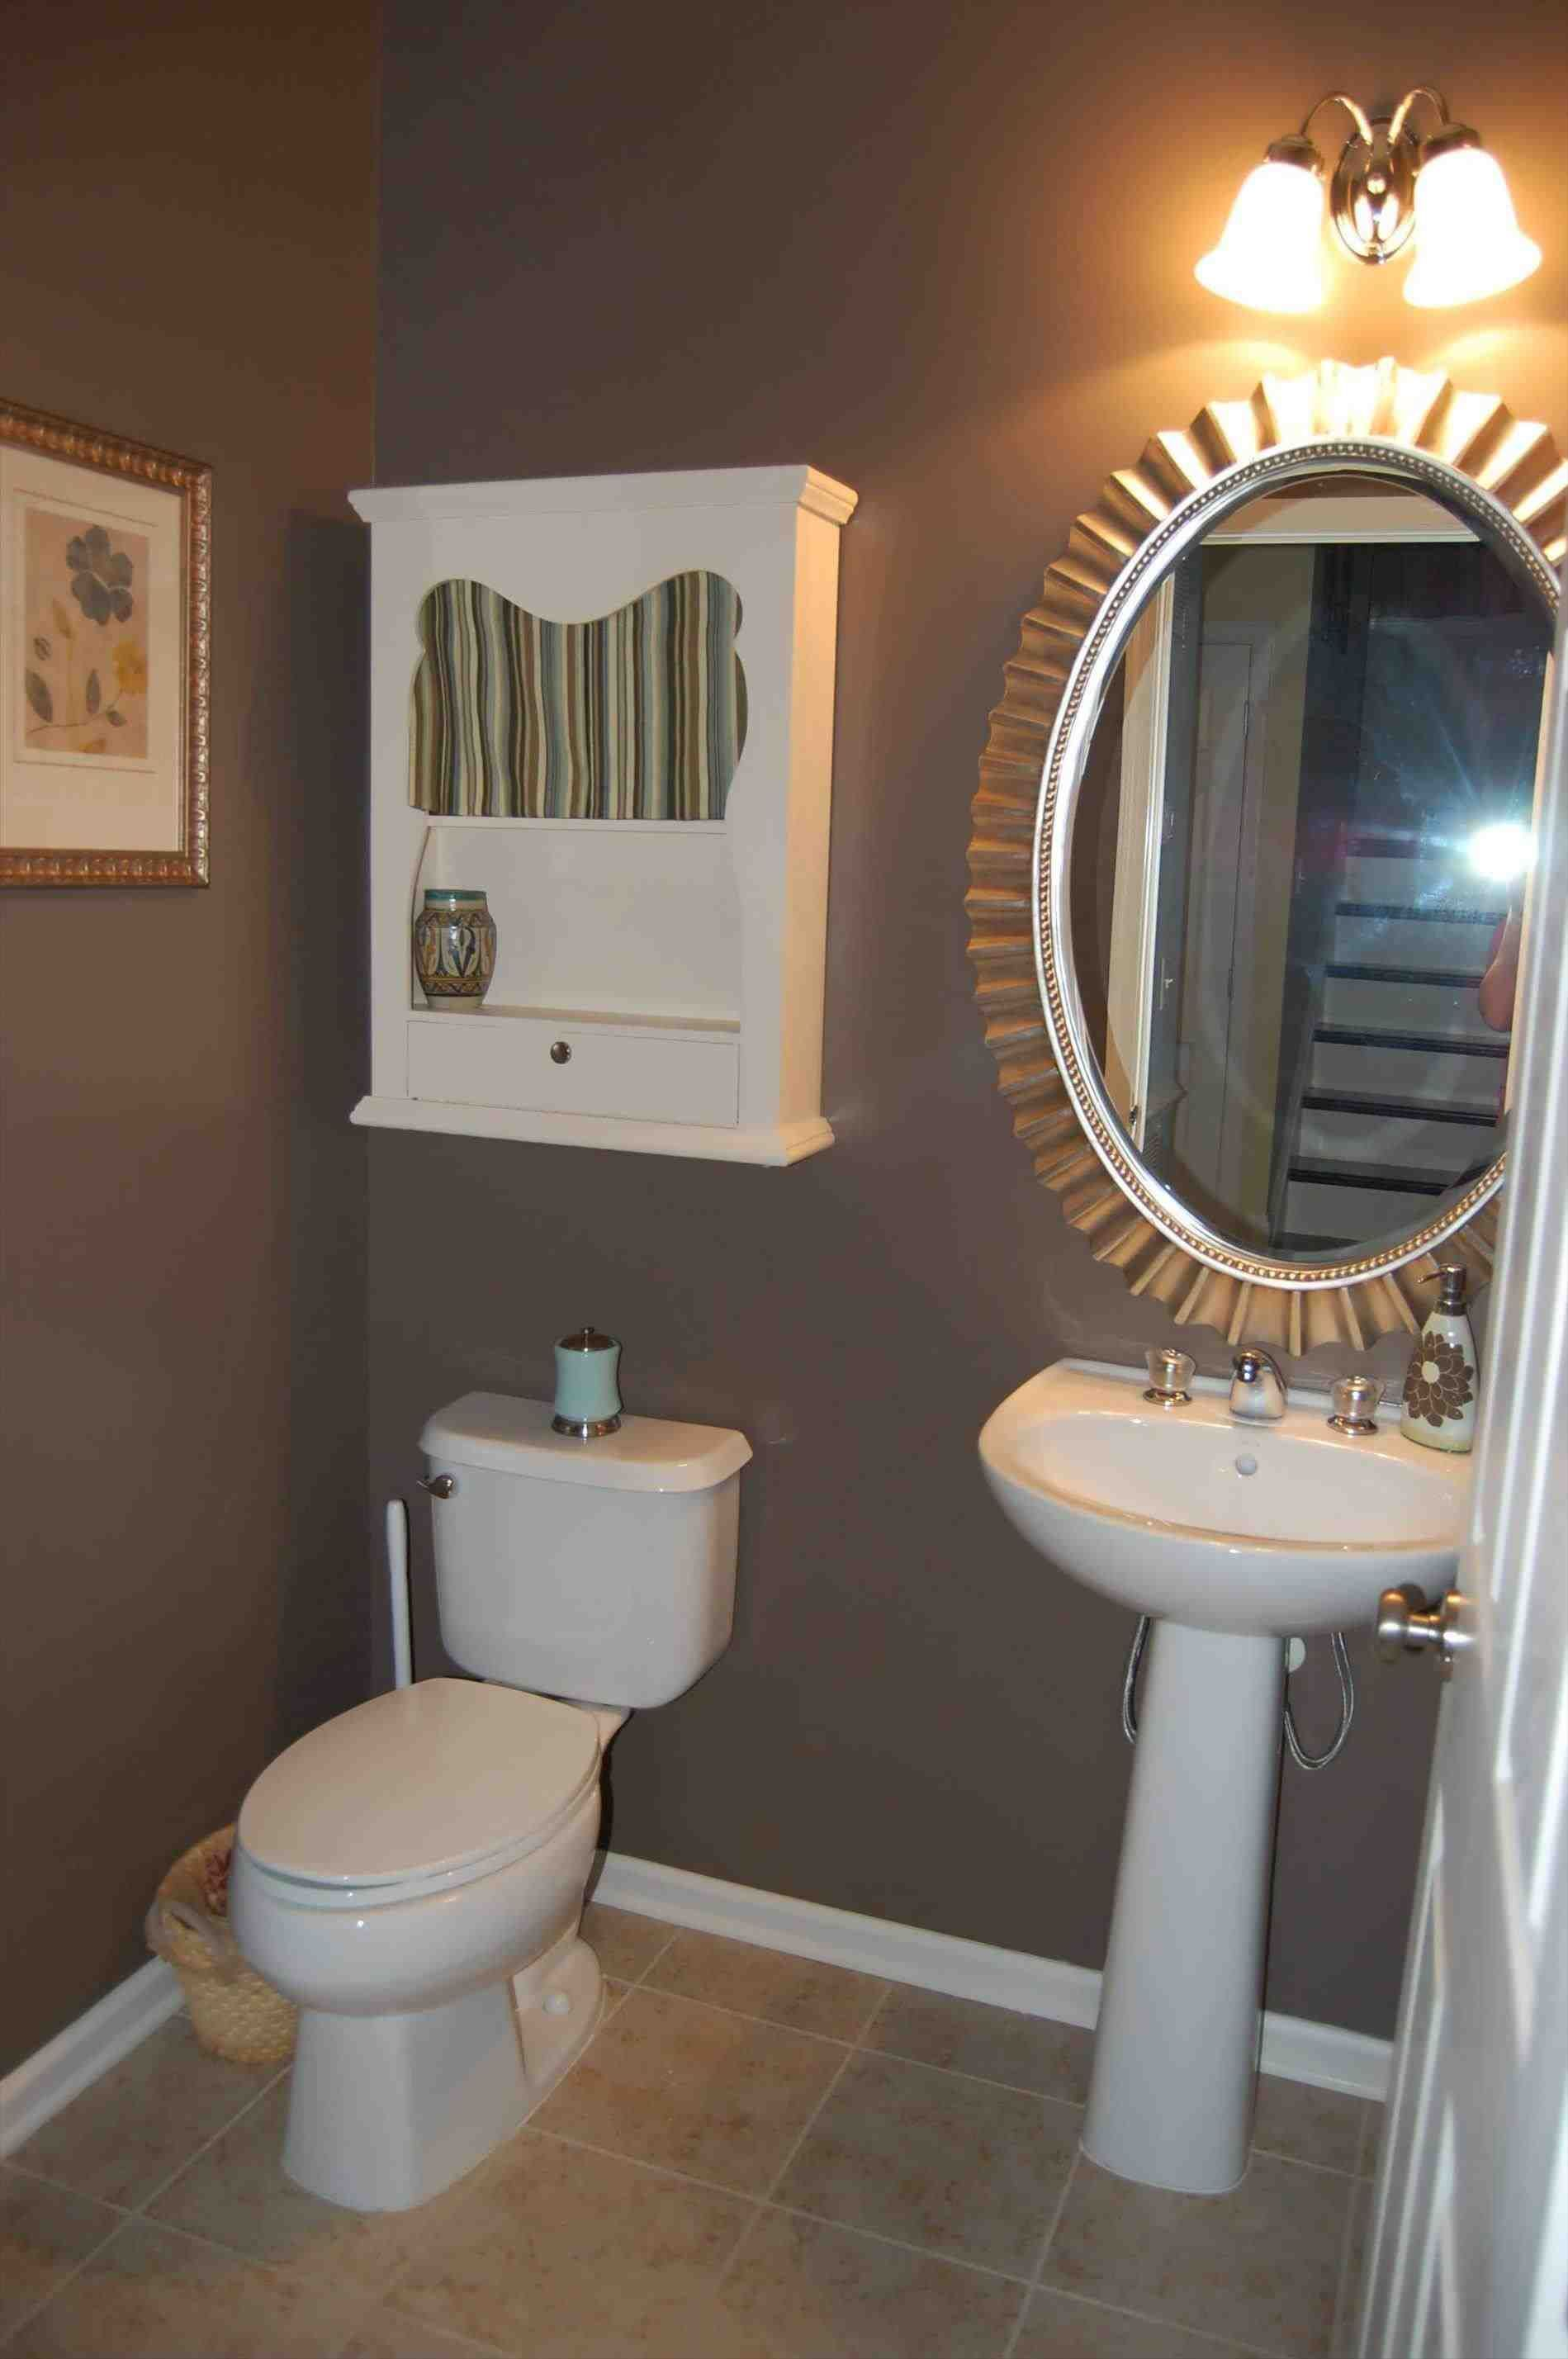 This Best Paint Color For Small Bathroom With No Windows  Very Classy Small Bathroom Window Design Ideas